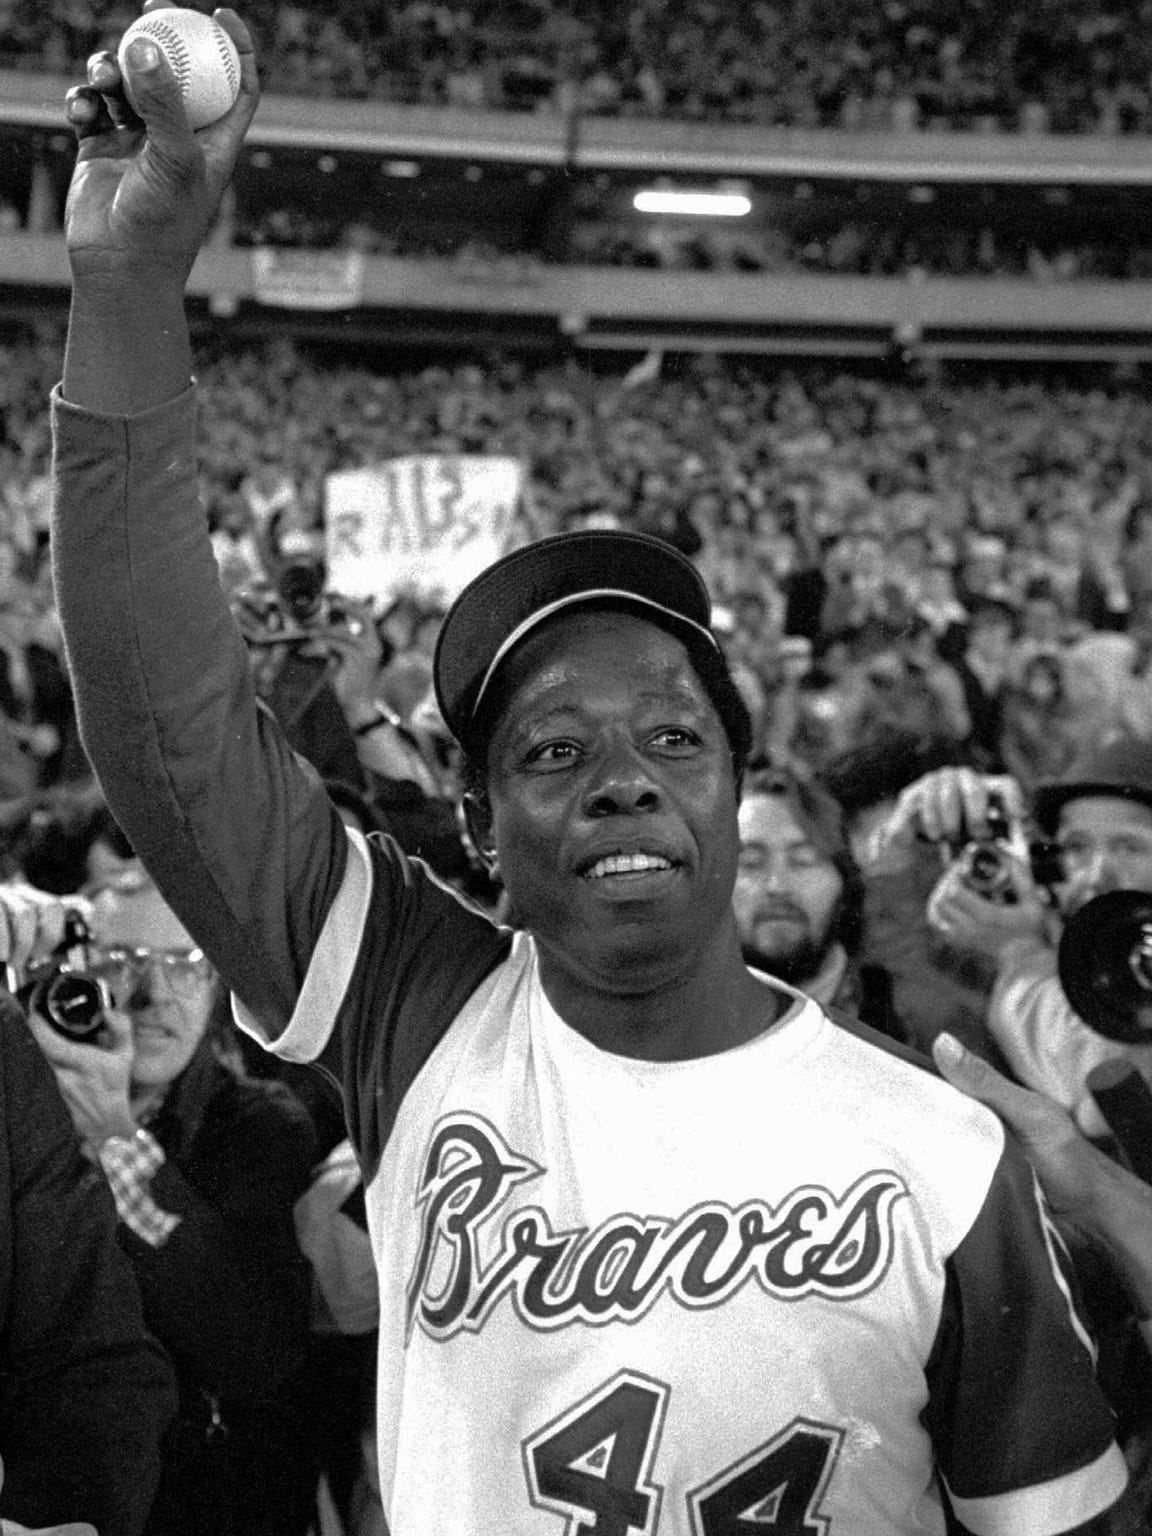 Hank Aaron shows off the baseball he hit for his record-breaking